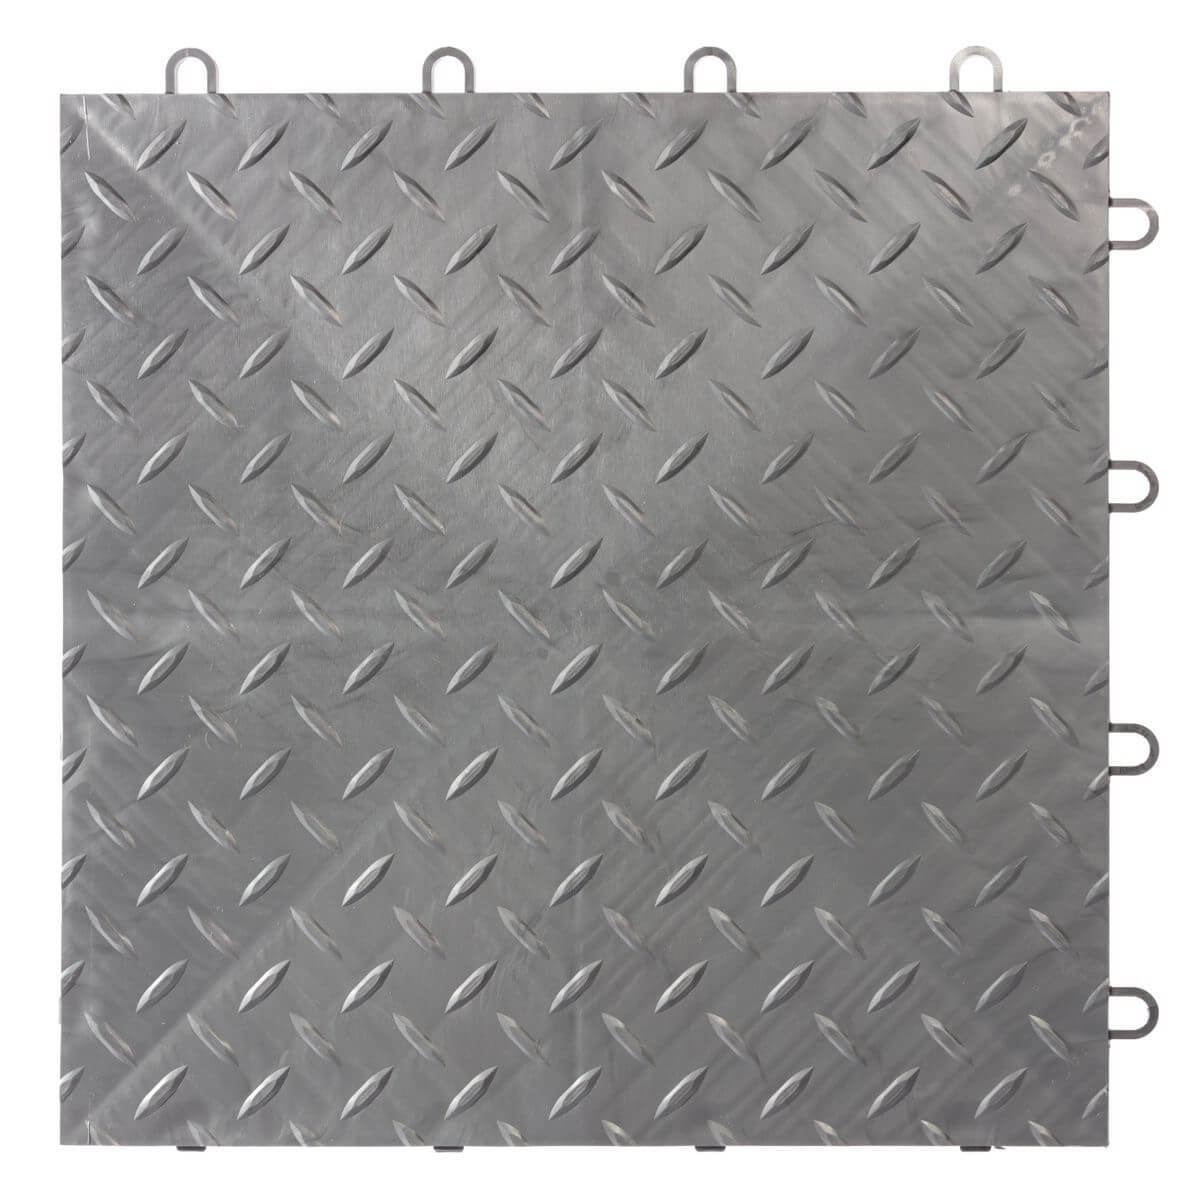 HDXT Diamond Garage Tile